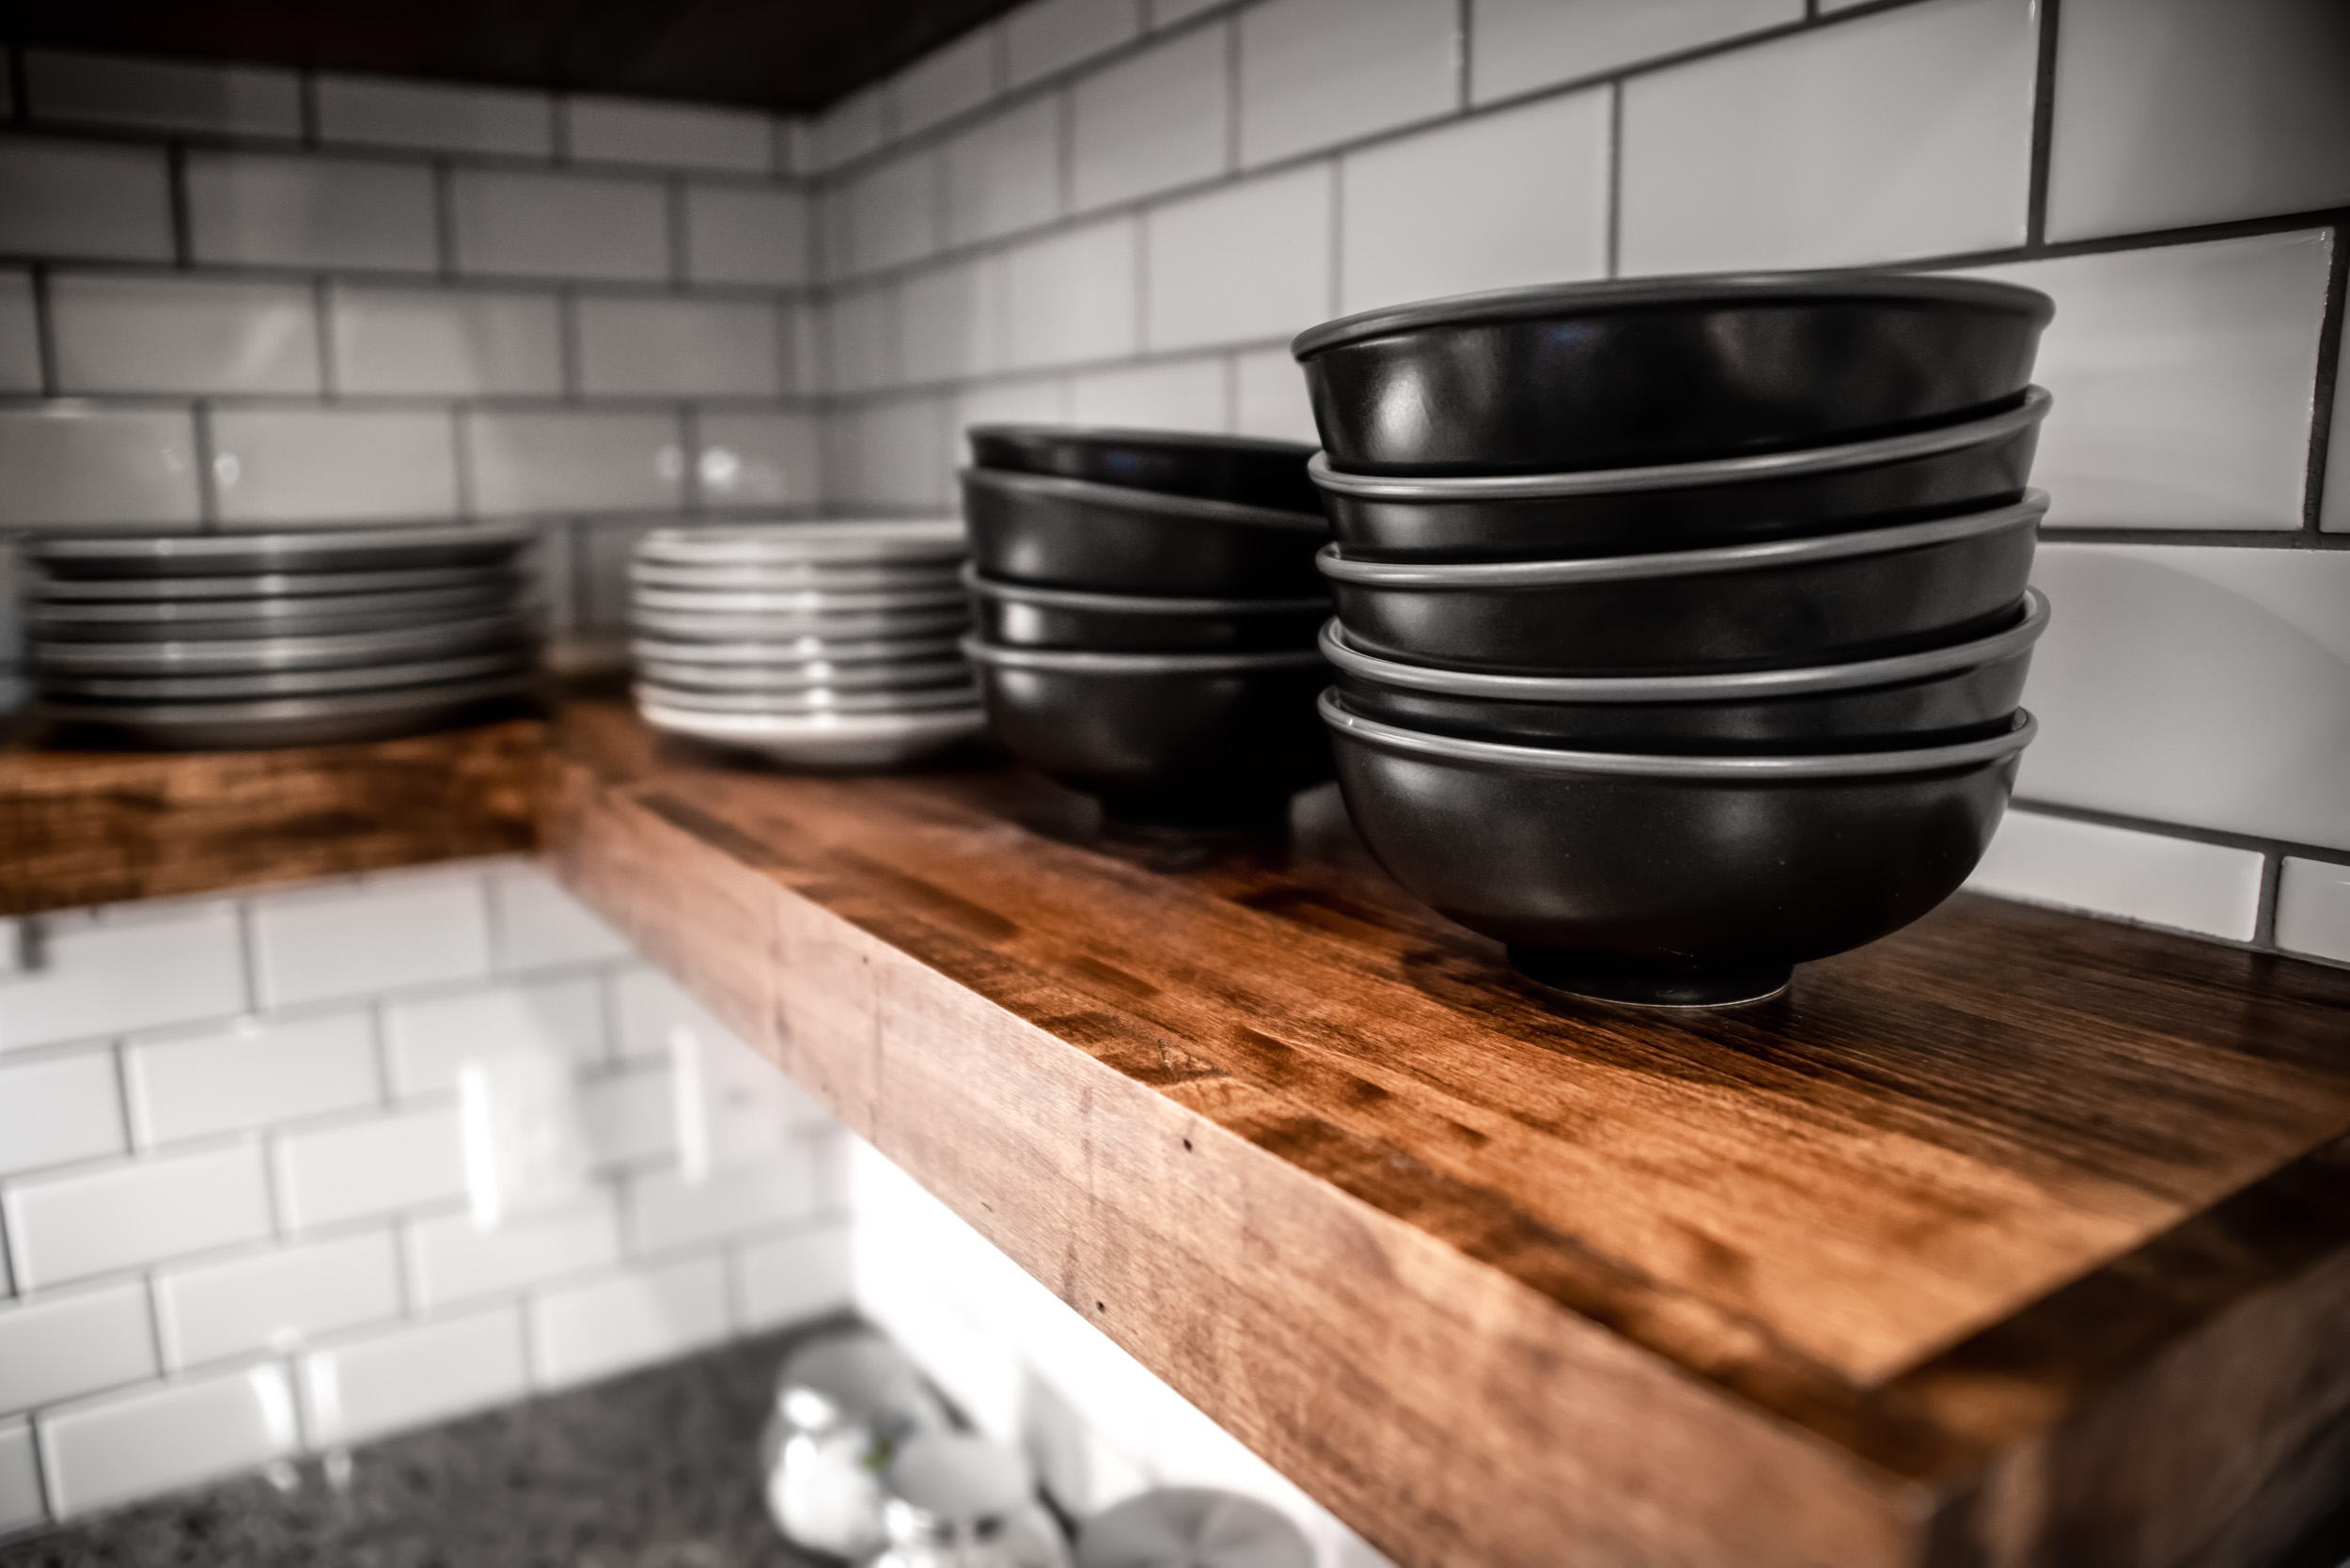 Reclaimed Wood Shelving and Tile Backsplash